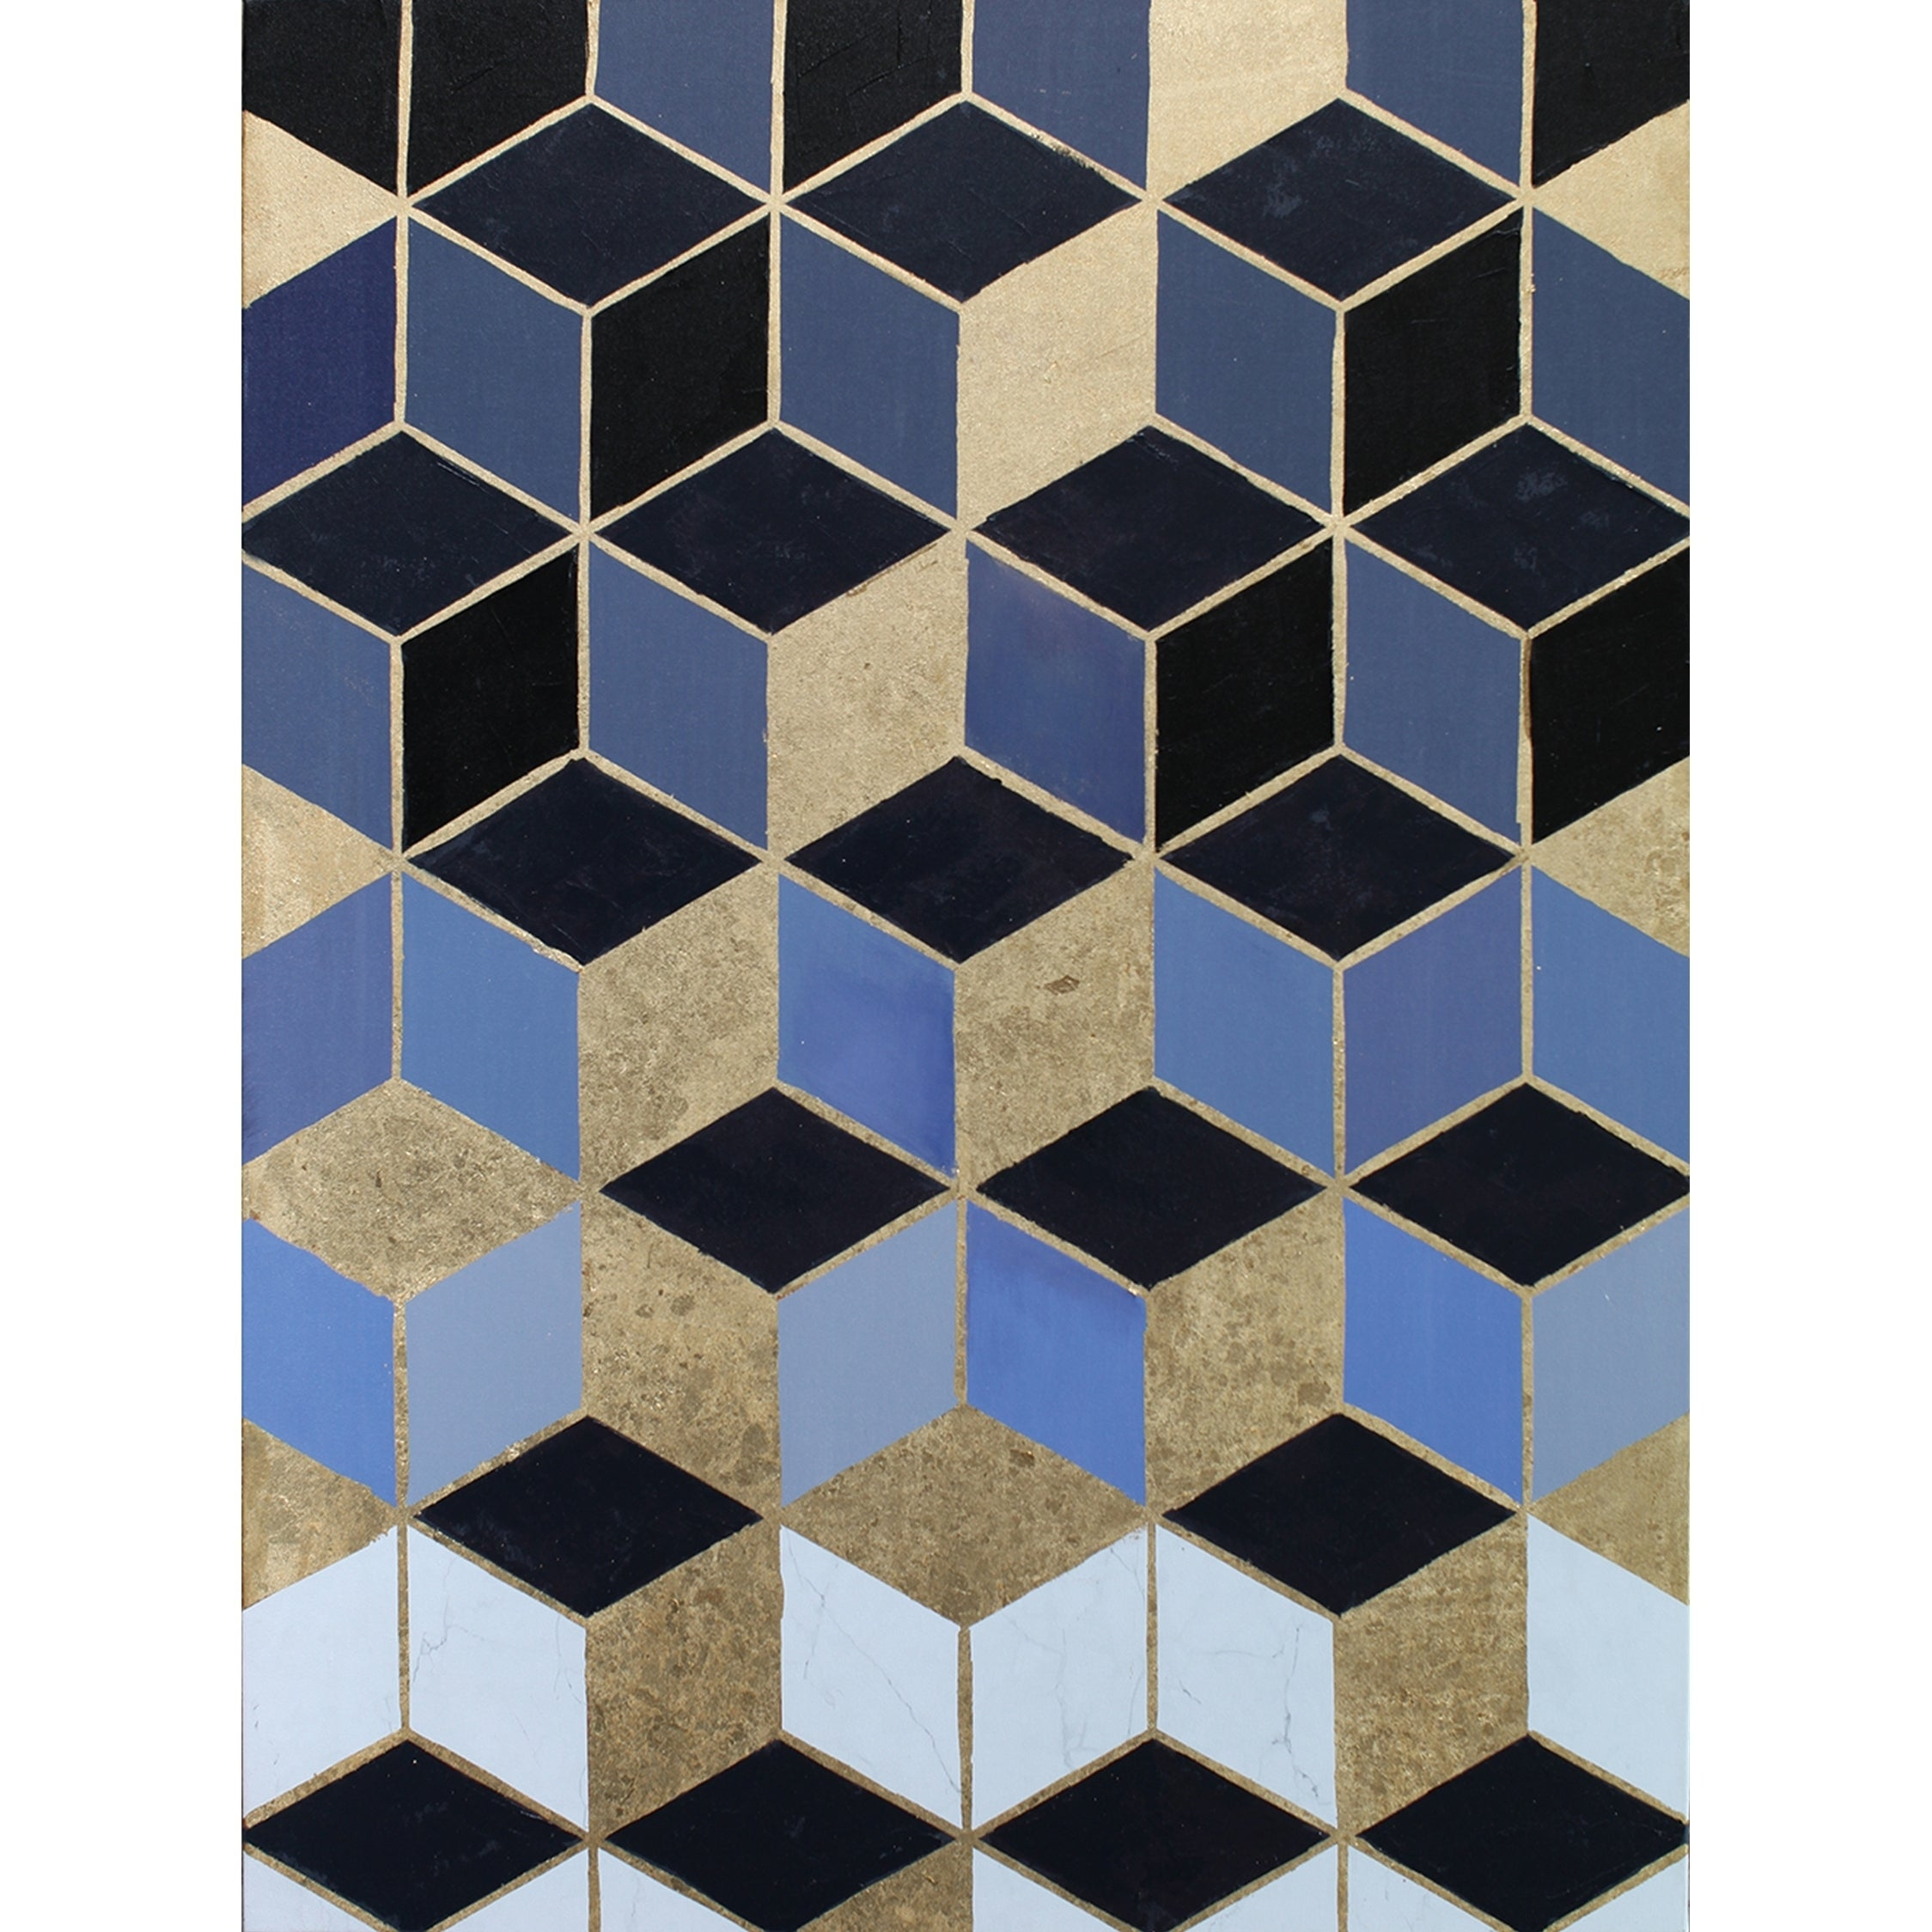 Contemporary Modern Geometric Canvas Wall Decor pertaining to Contemporary Geometric Wall Decor (Image 9 of 30)